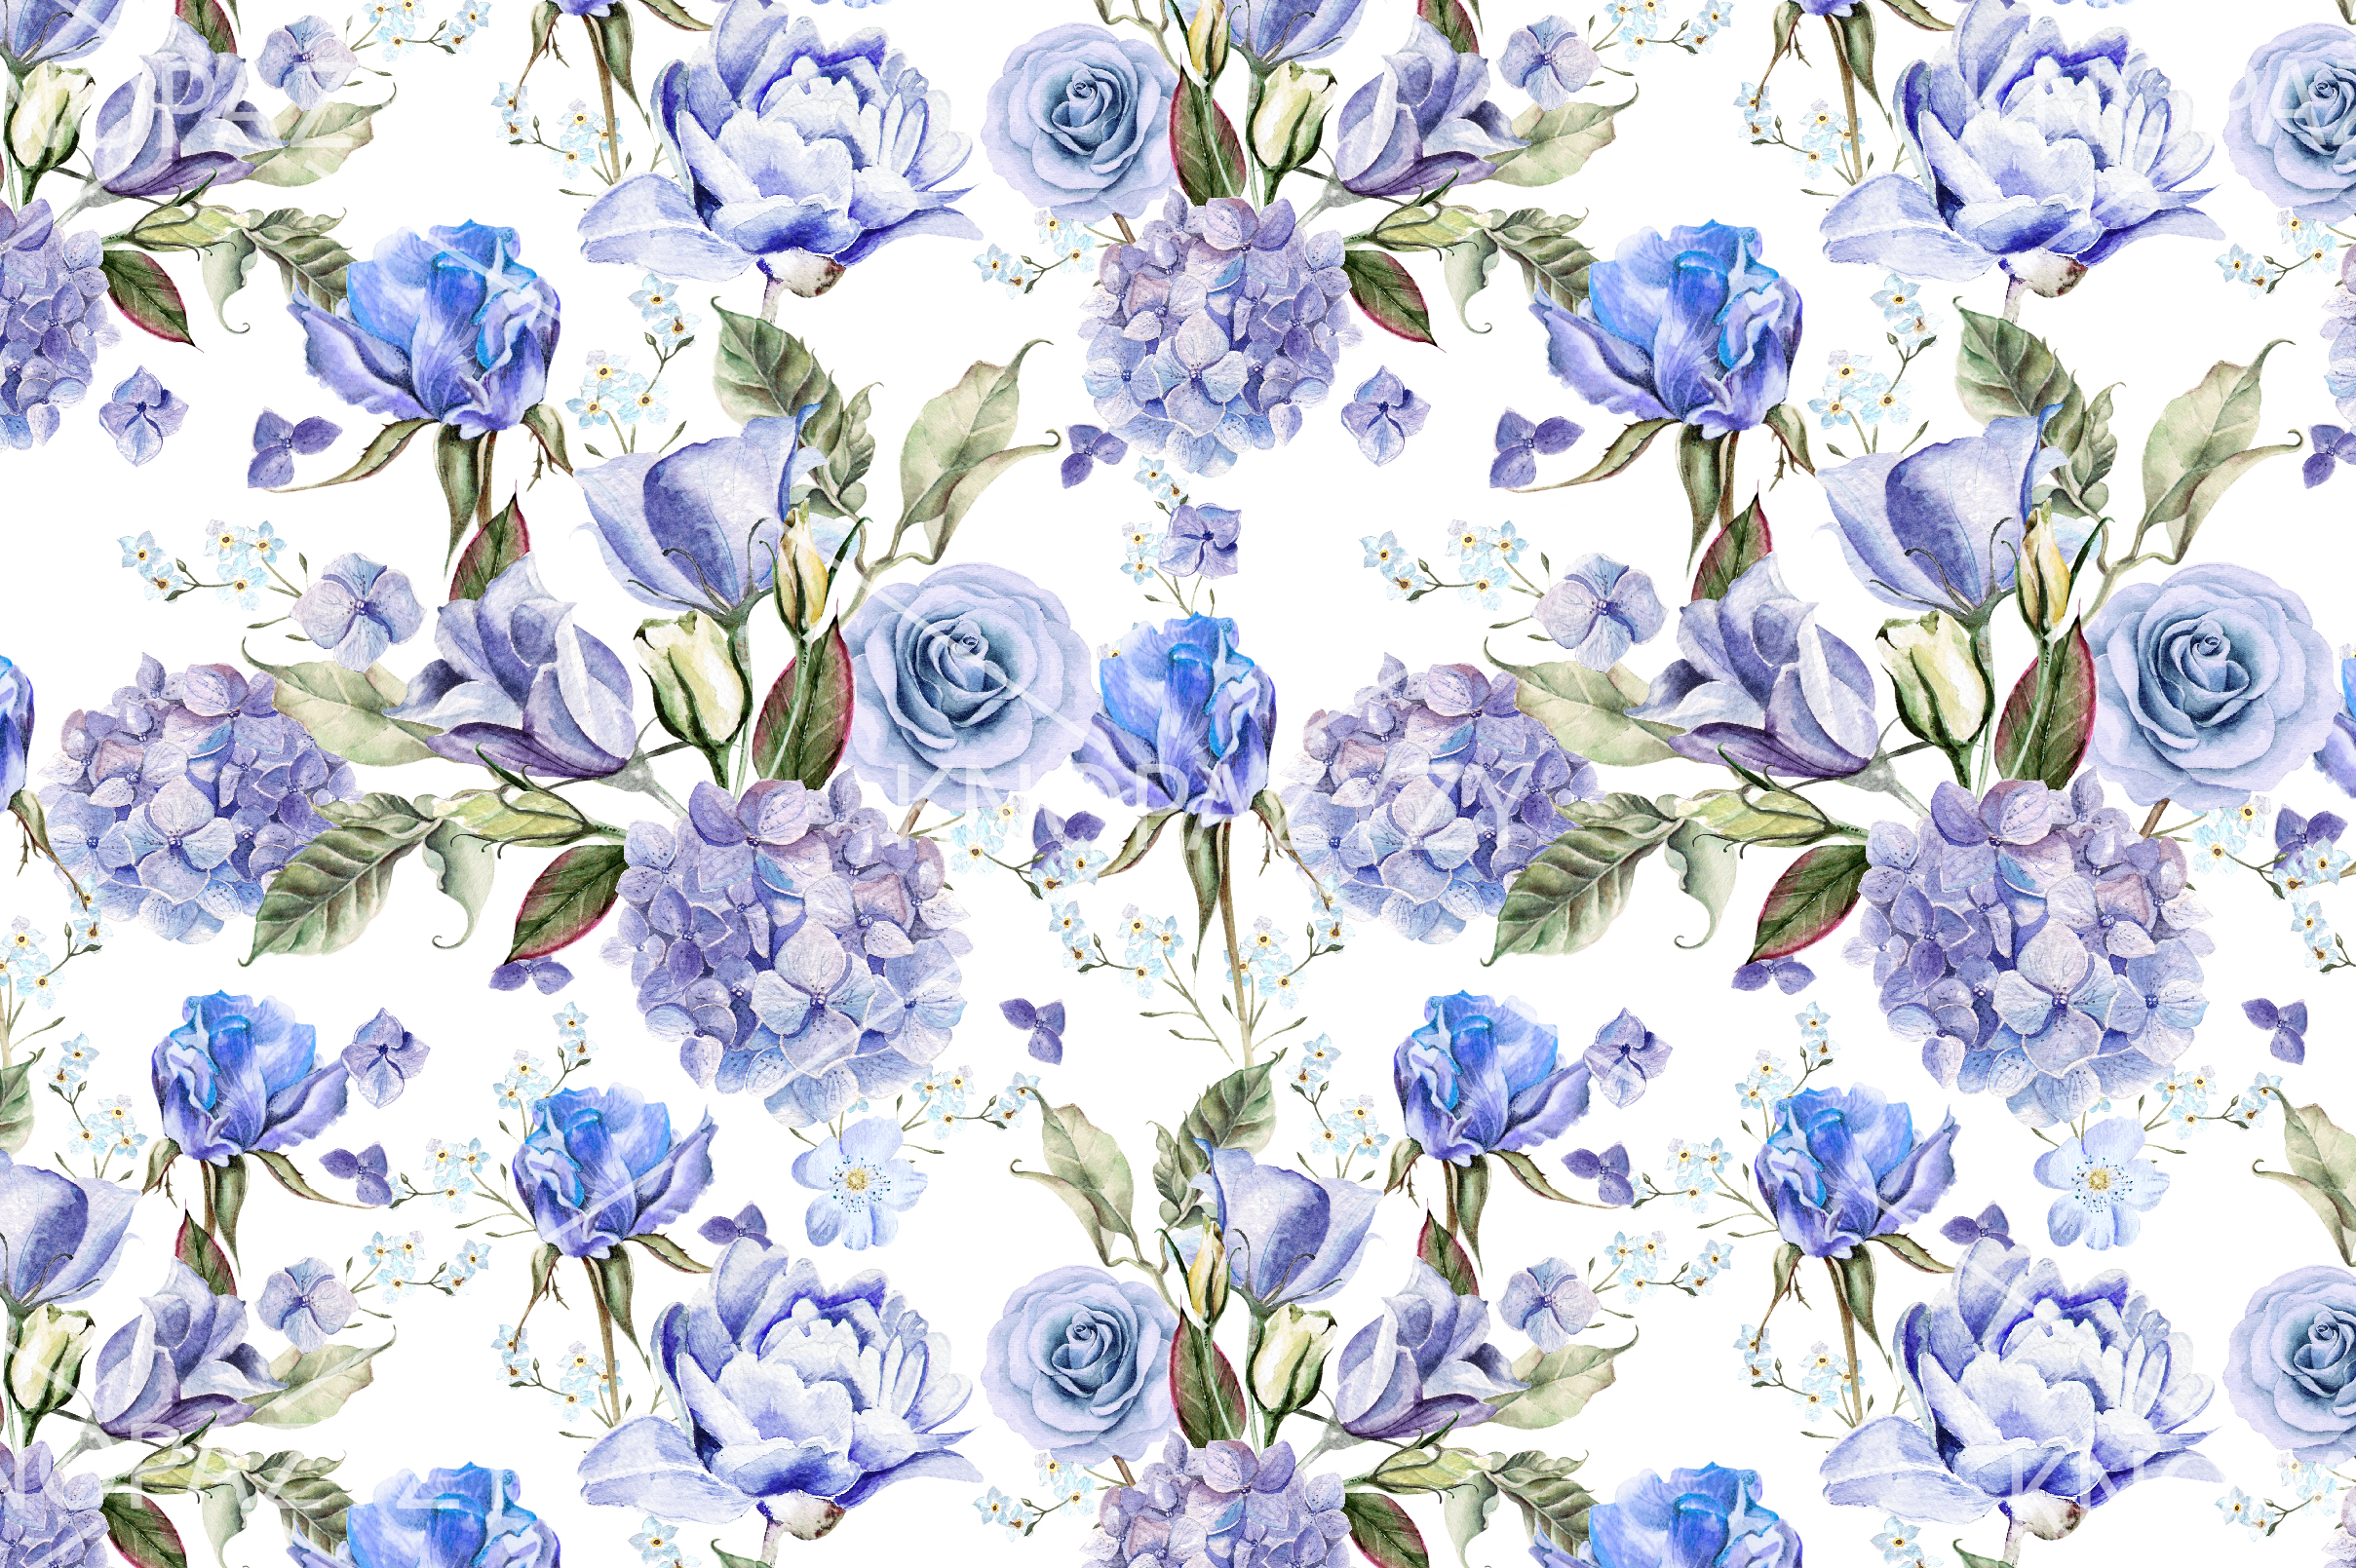 9 Hand Drawn Watercolor PATTERNS example image 7